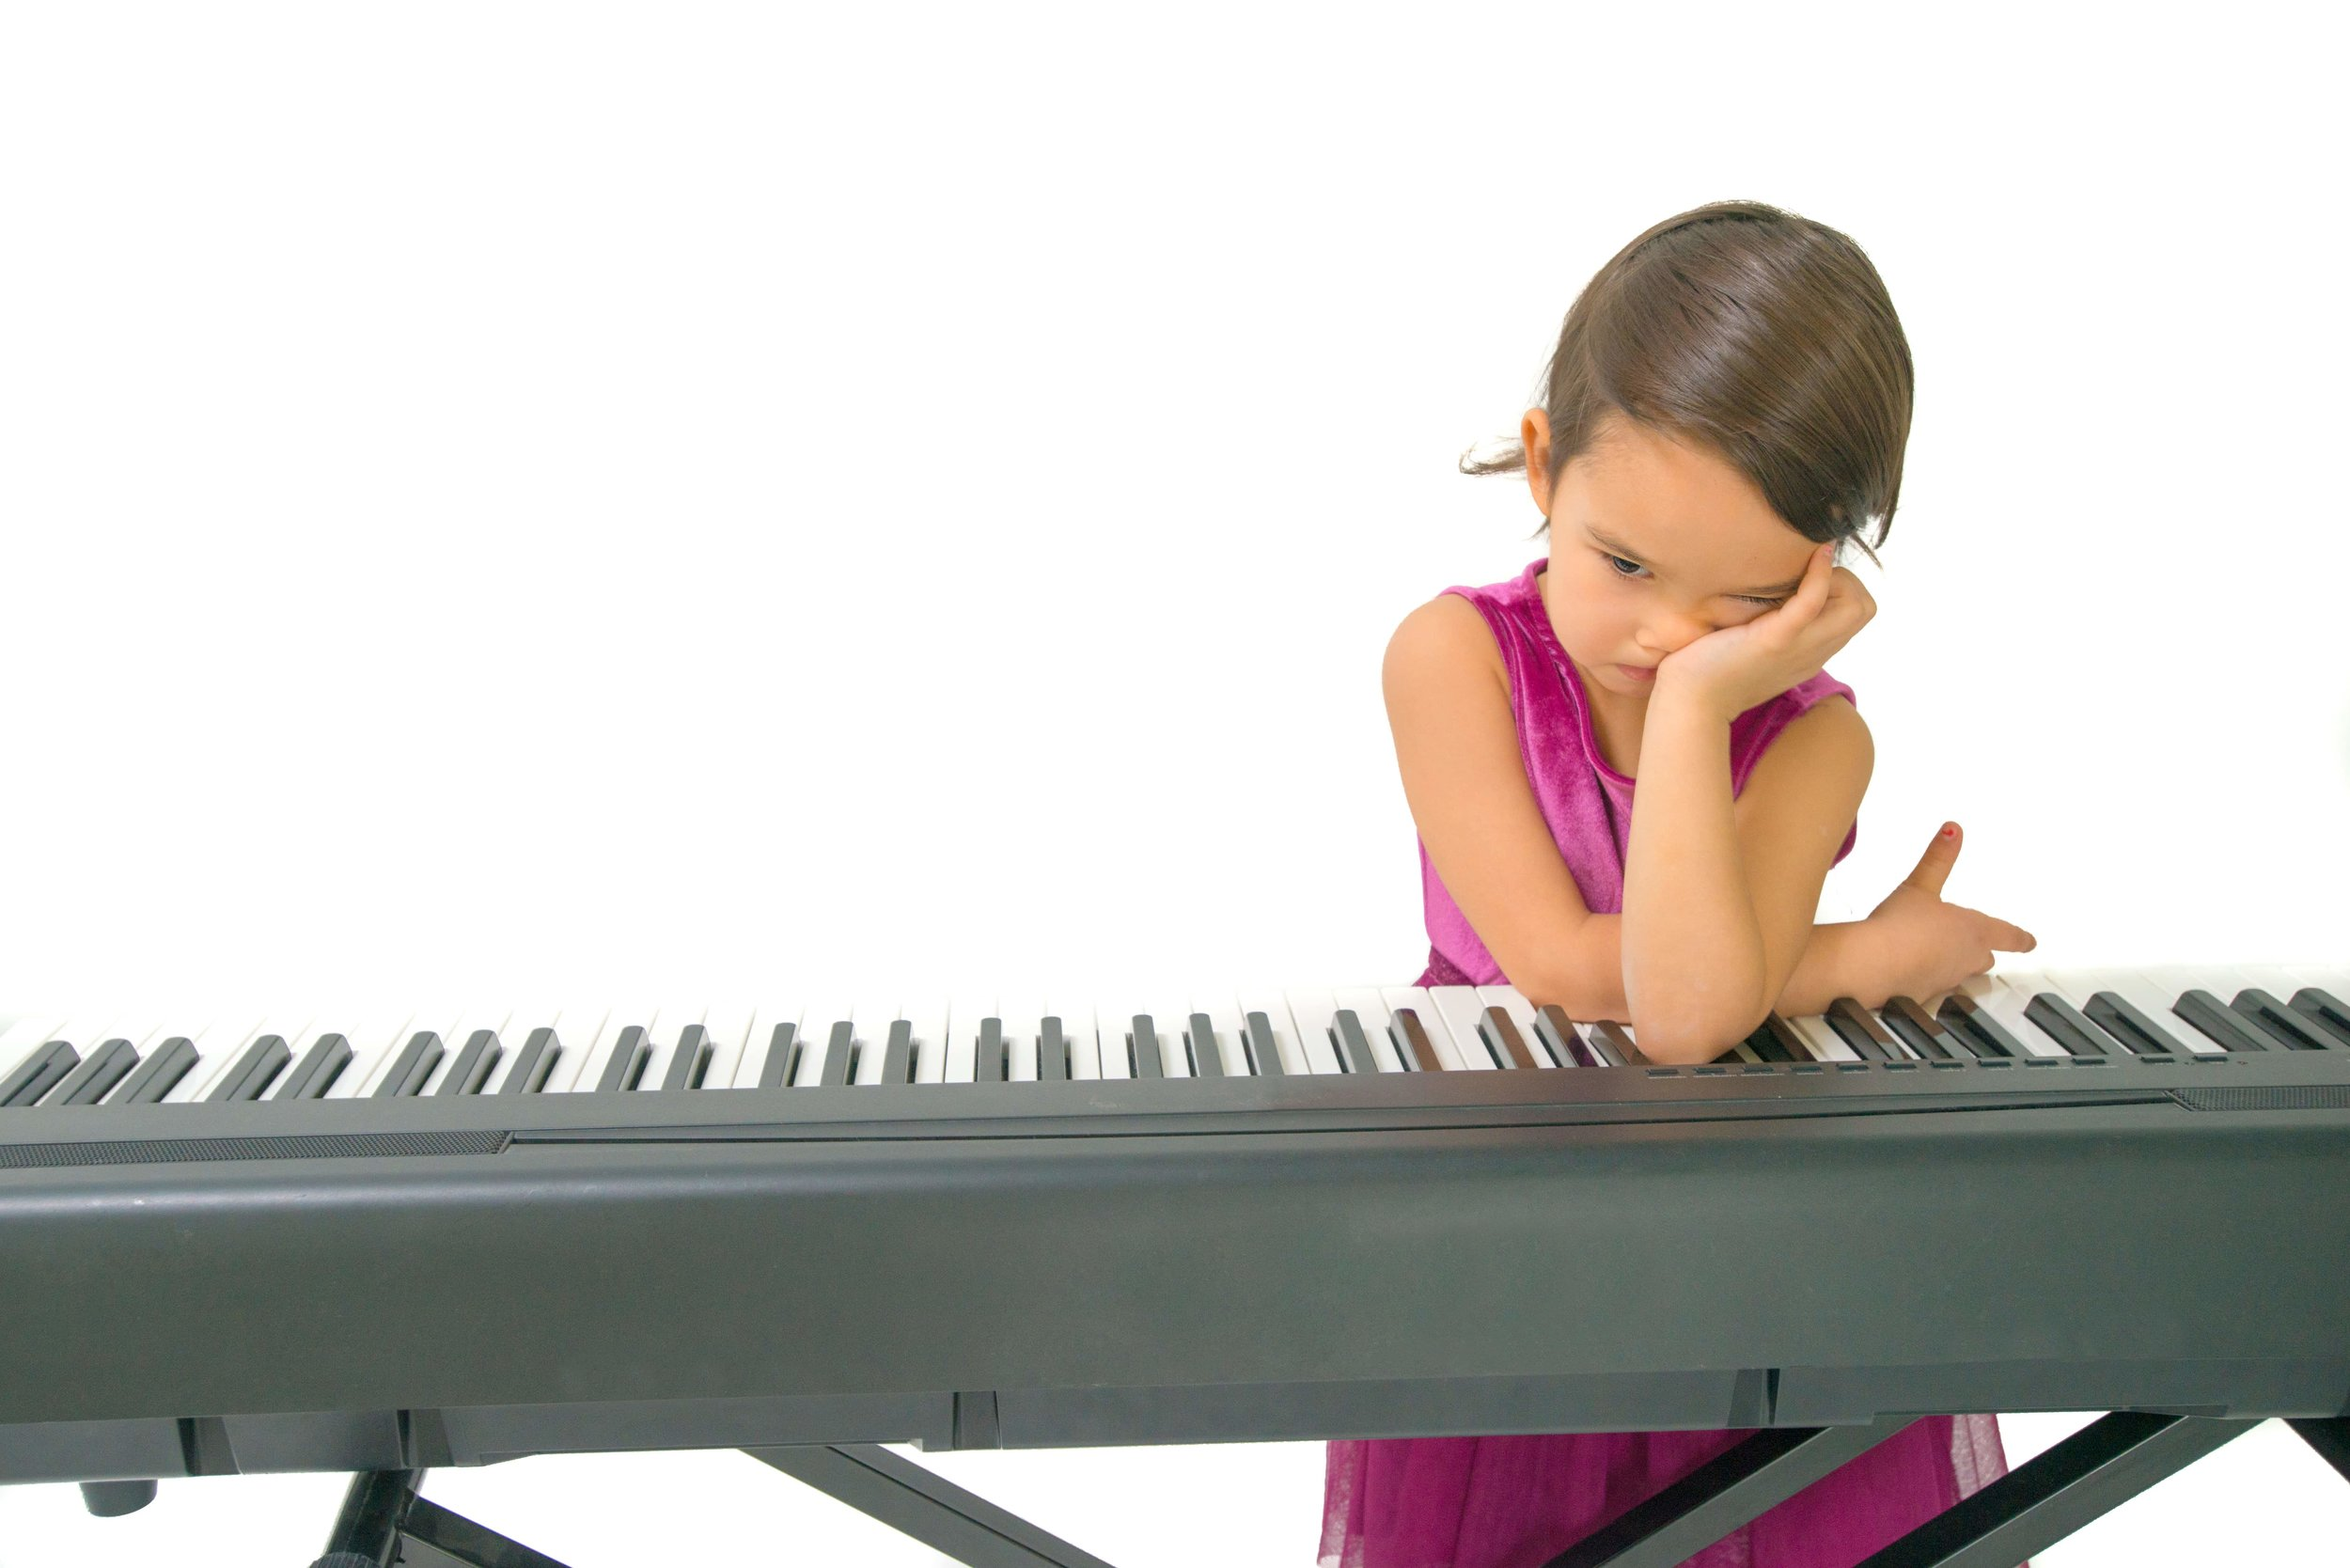 Encourage your child to try a few things - breathing exercises, taking a short pre-show walk, writing down all their fears before a musical performance - to help them manage their stage fright.